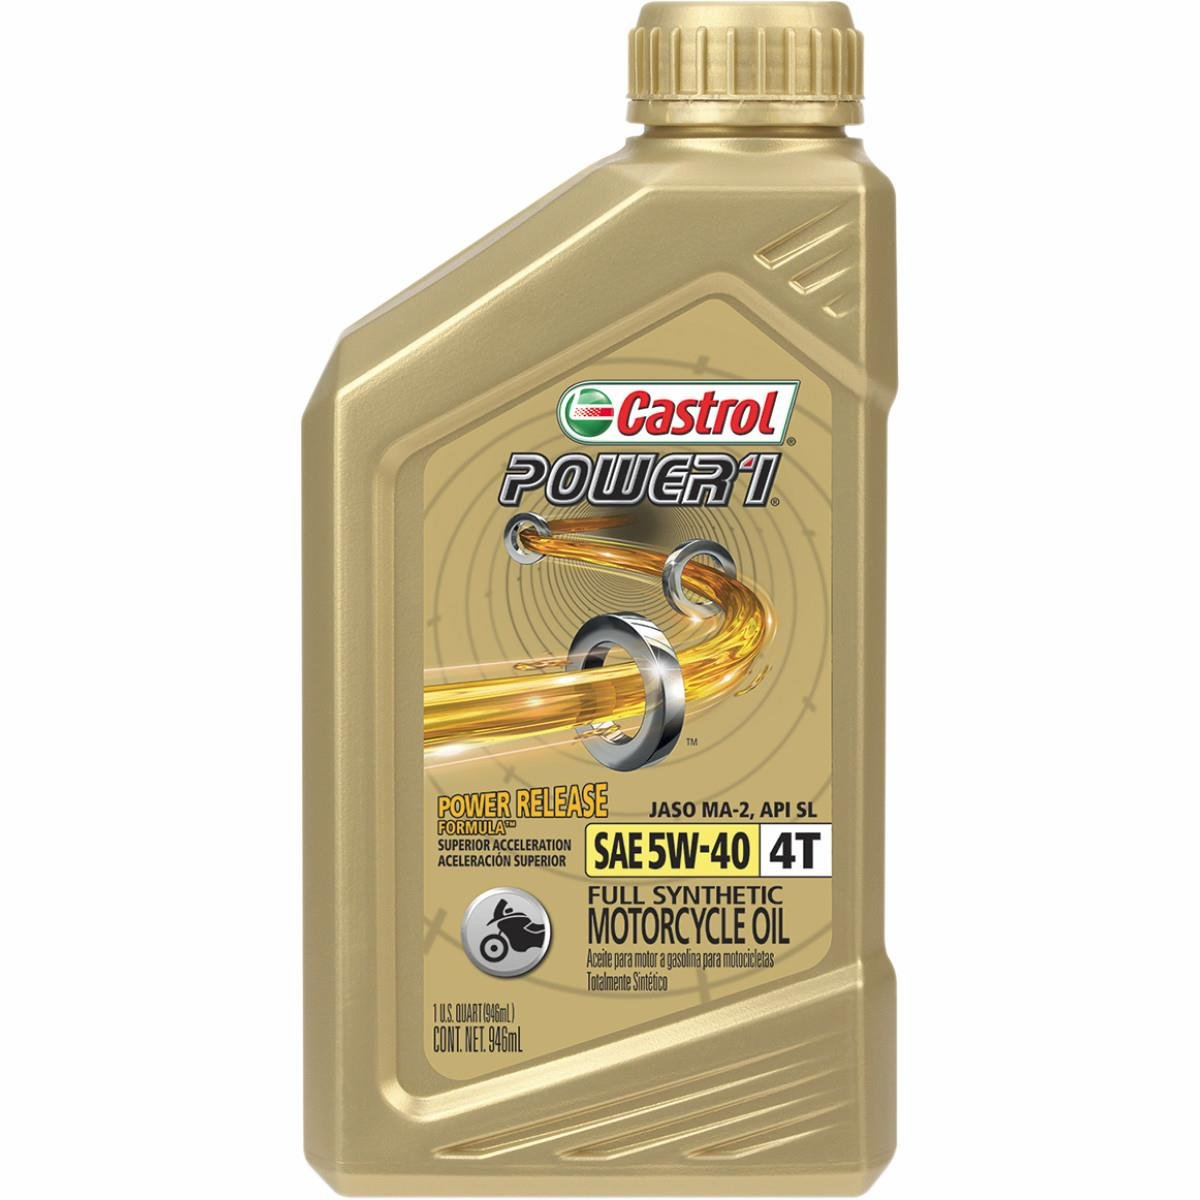 Castrol Power 1 Racing 4T Motorcycle Oil - 5W40